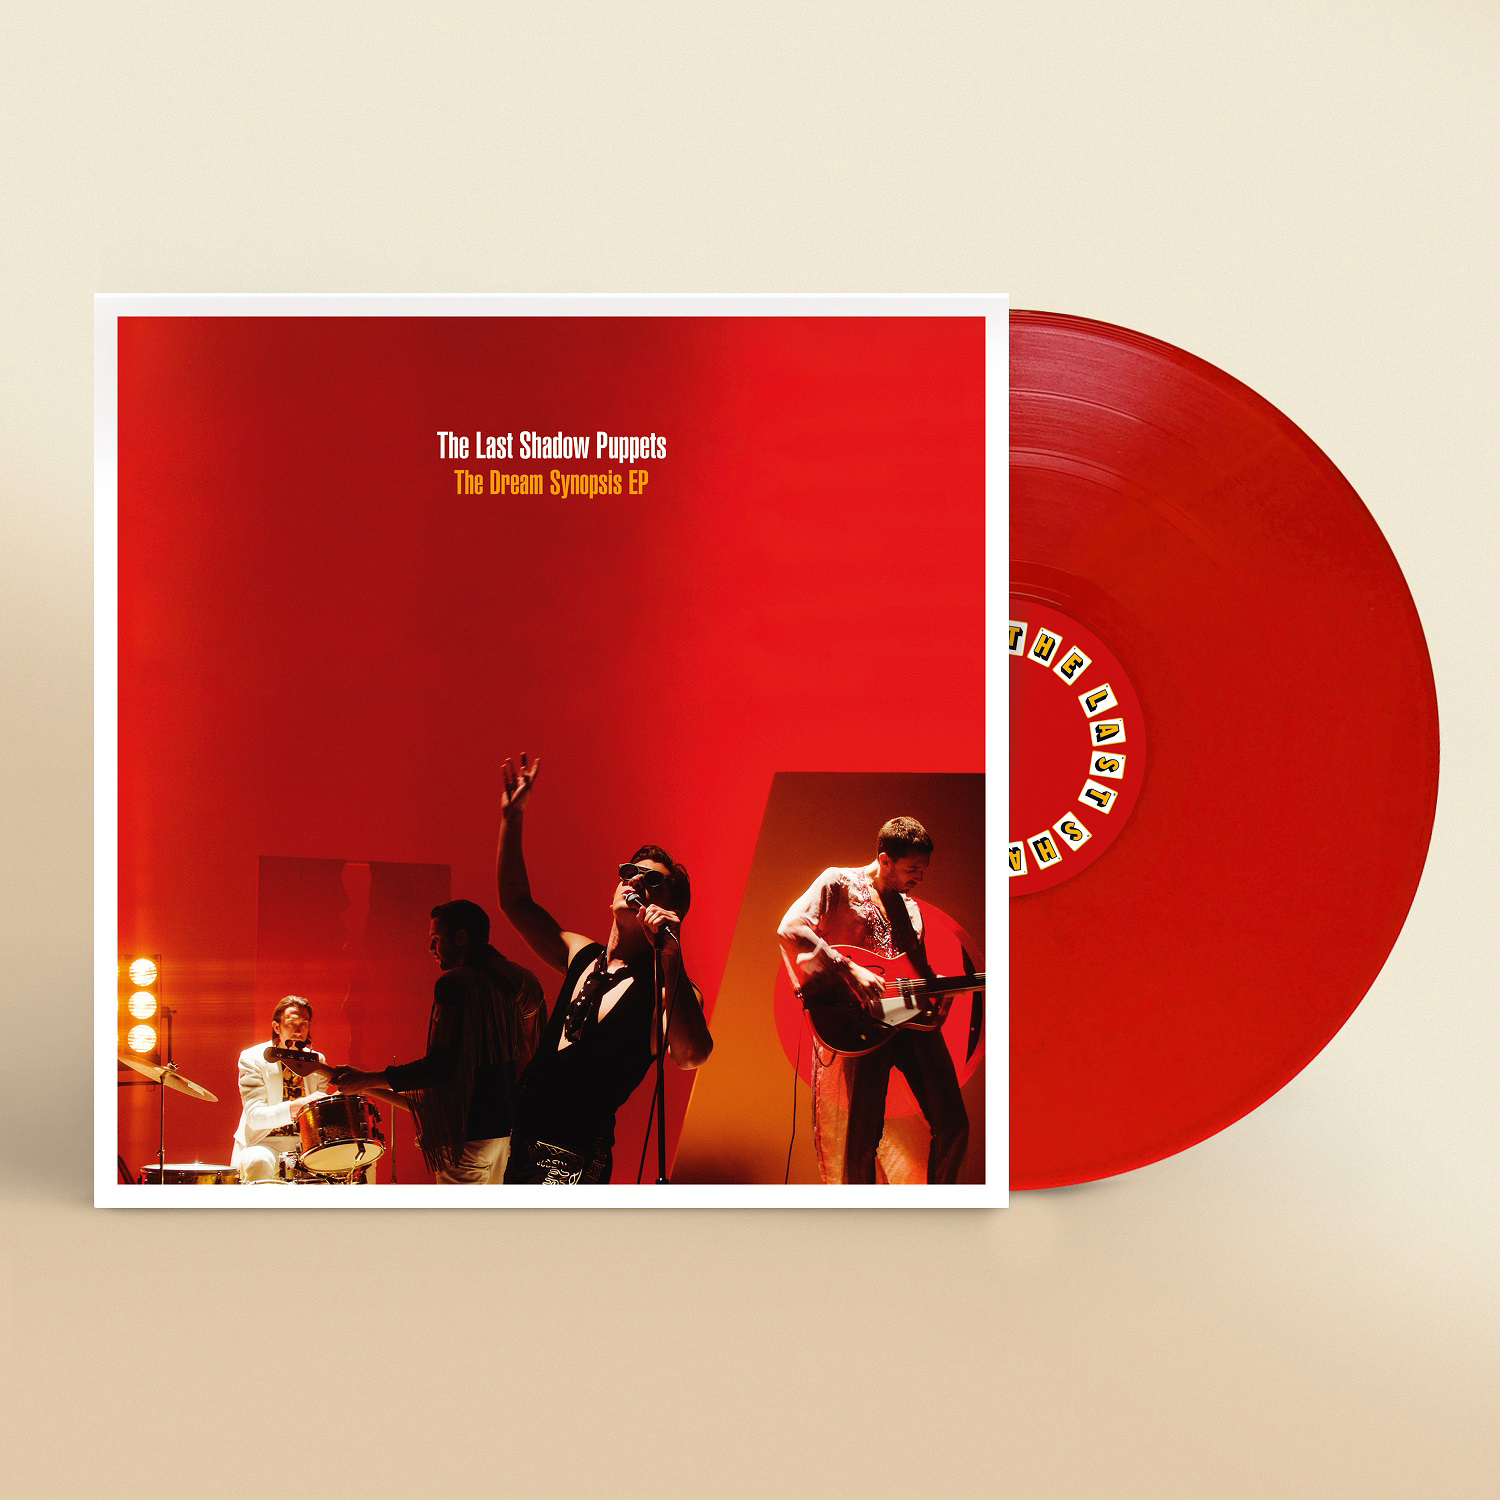 Po Now The Last Shadow Puppets The Dream Synopsis 10